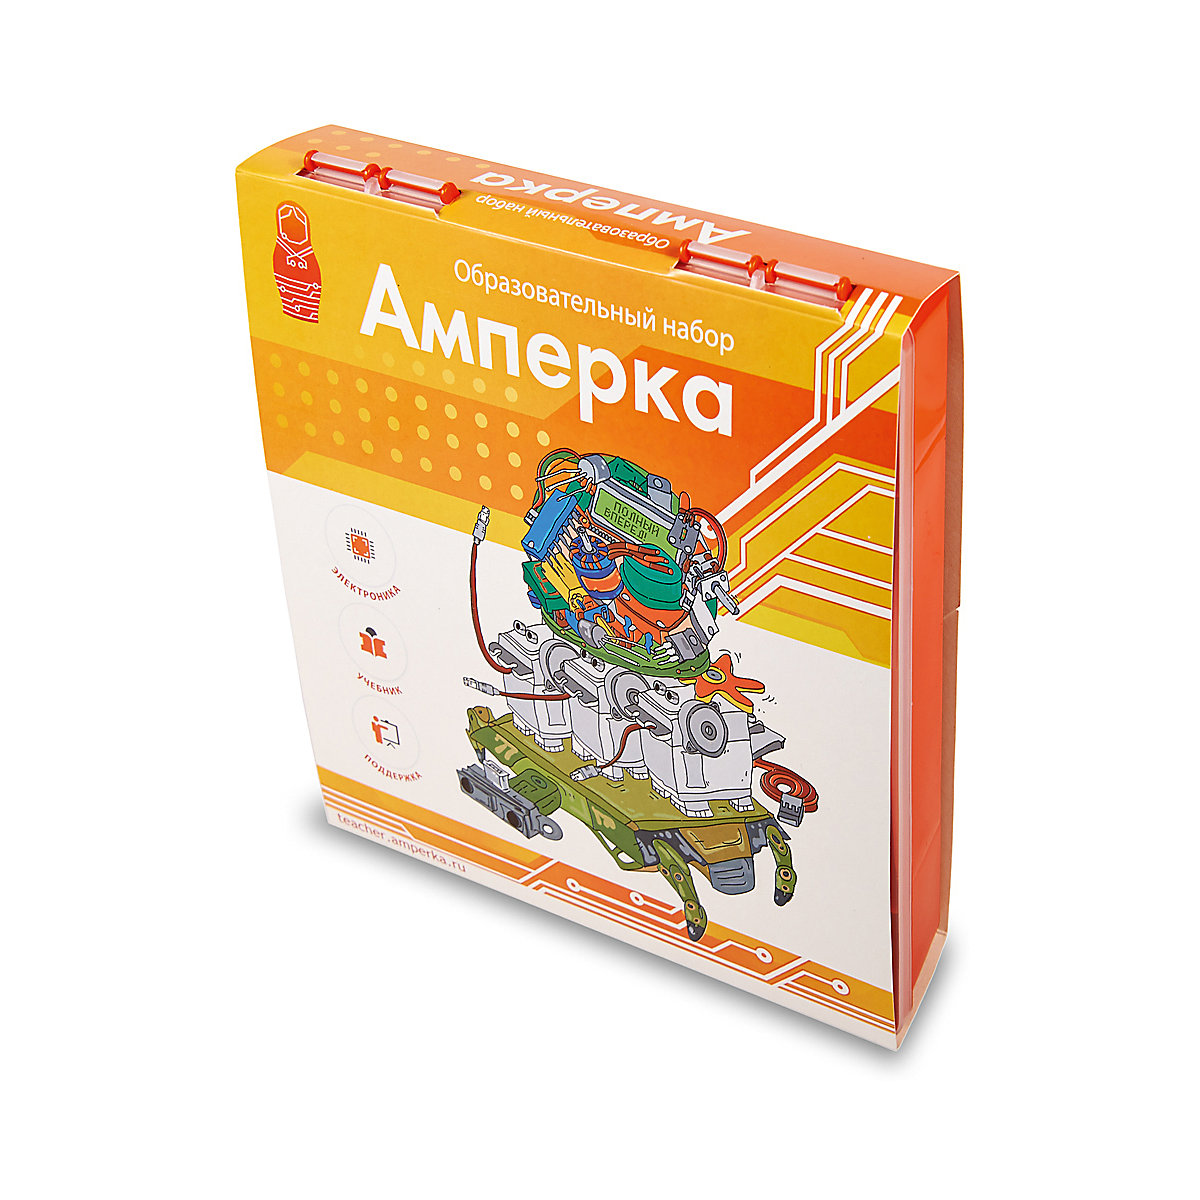 AMPERKA Blocks 5427690 toys for boys girls building construction educational developing toy game play team modeling boy girl lepin new 460pcs 07051 batman movie series the killer crocodile tail gator 70907 building blocks bricks educational toys